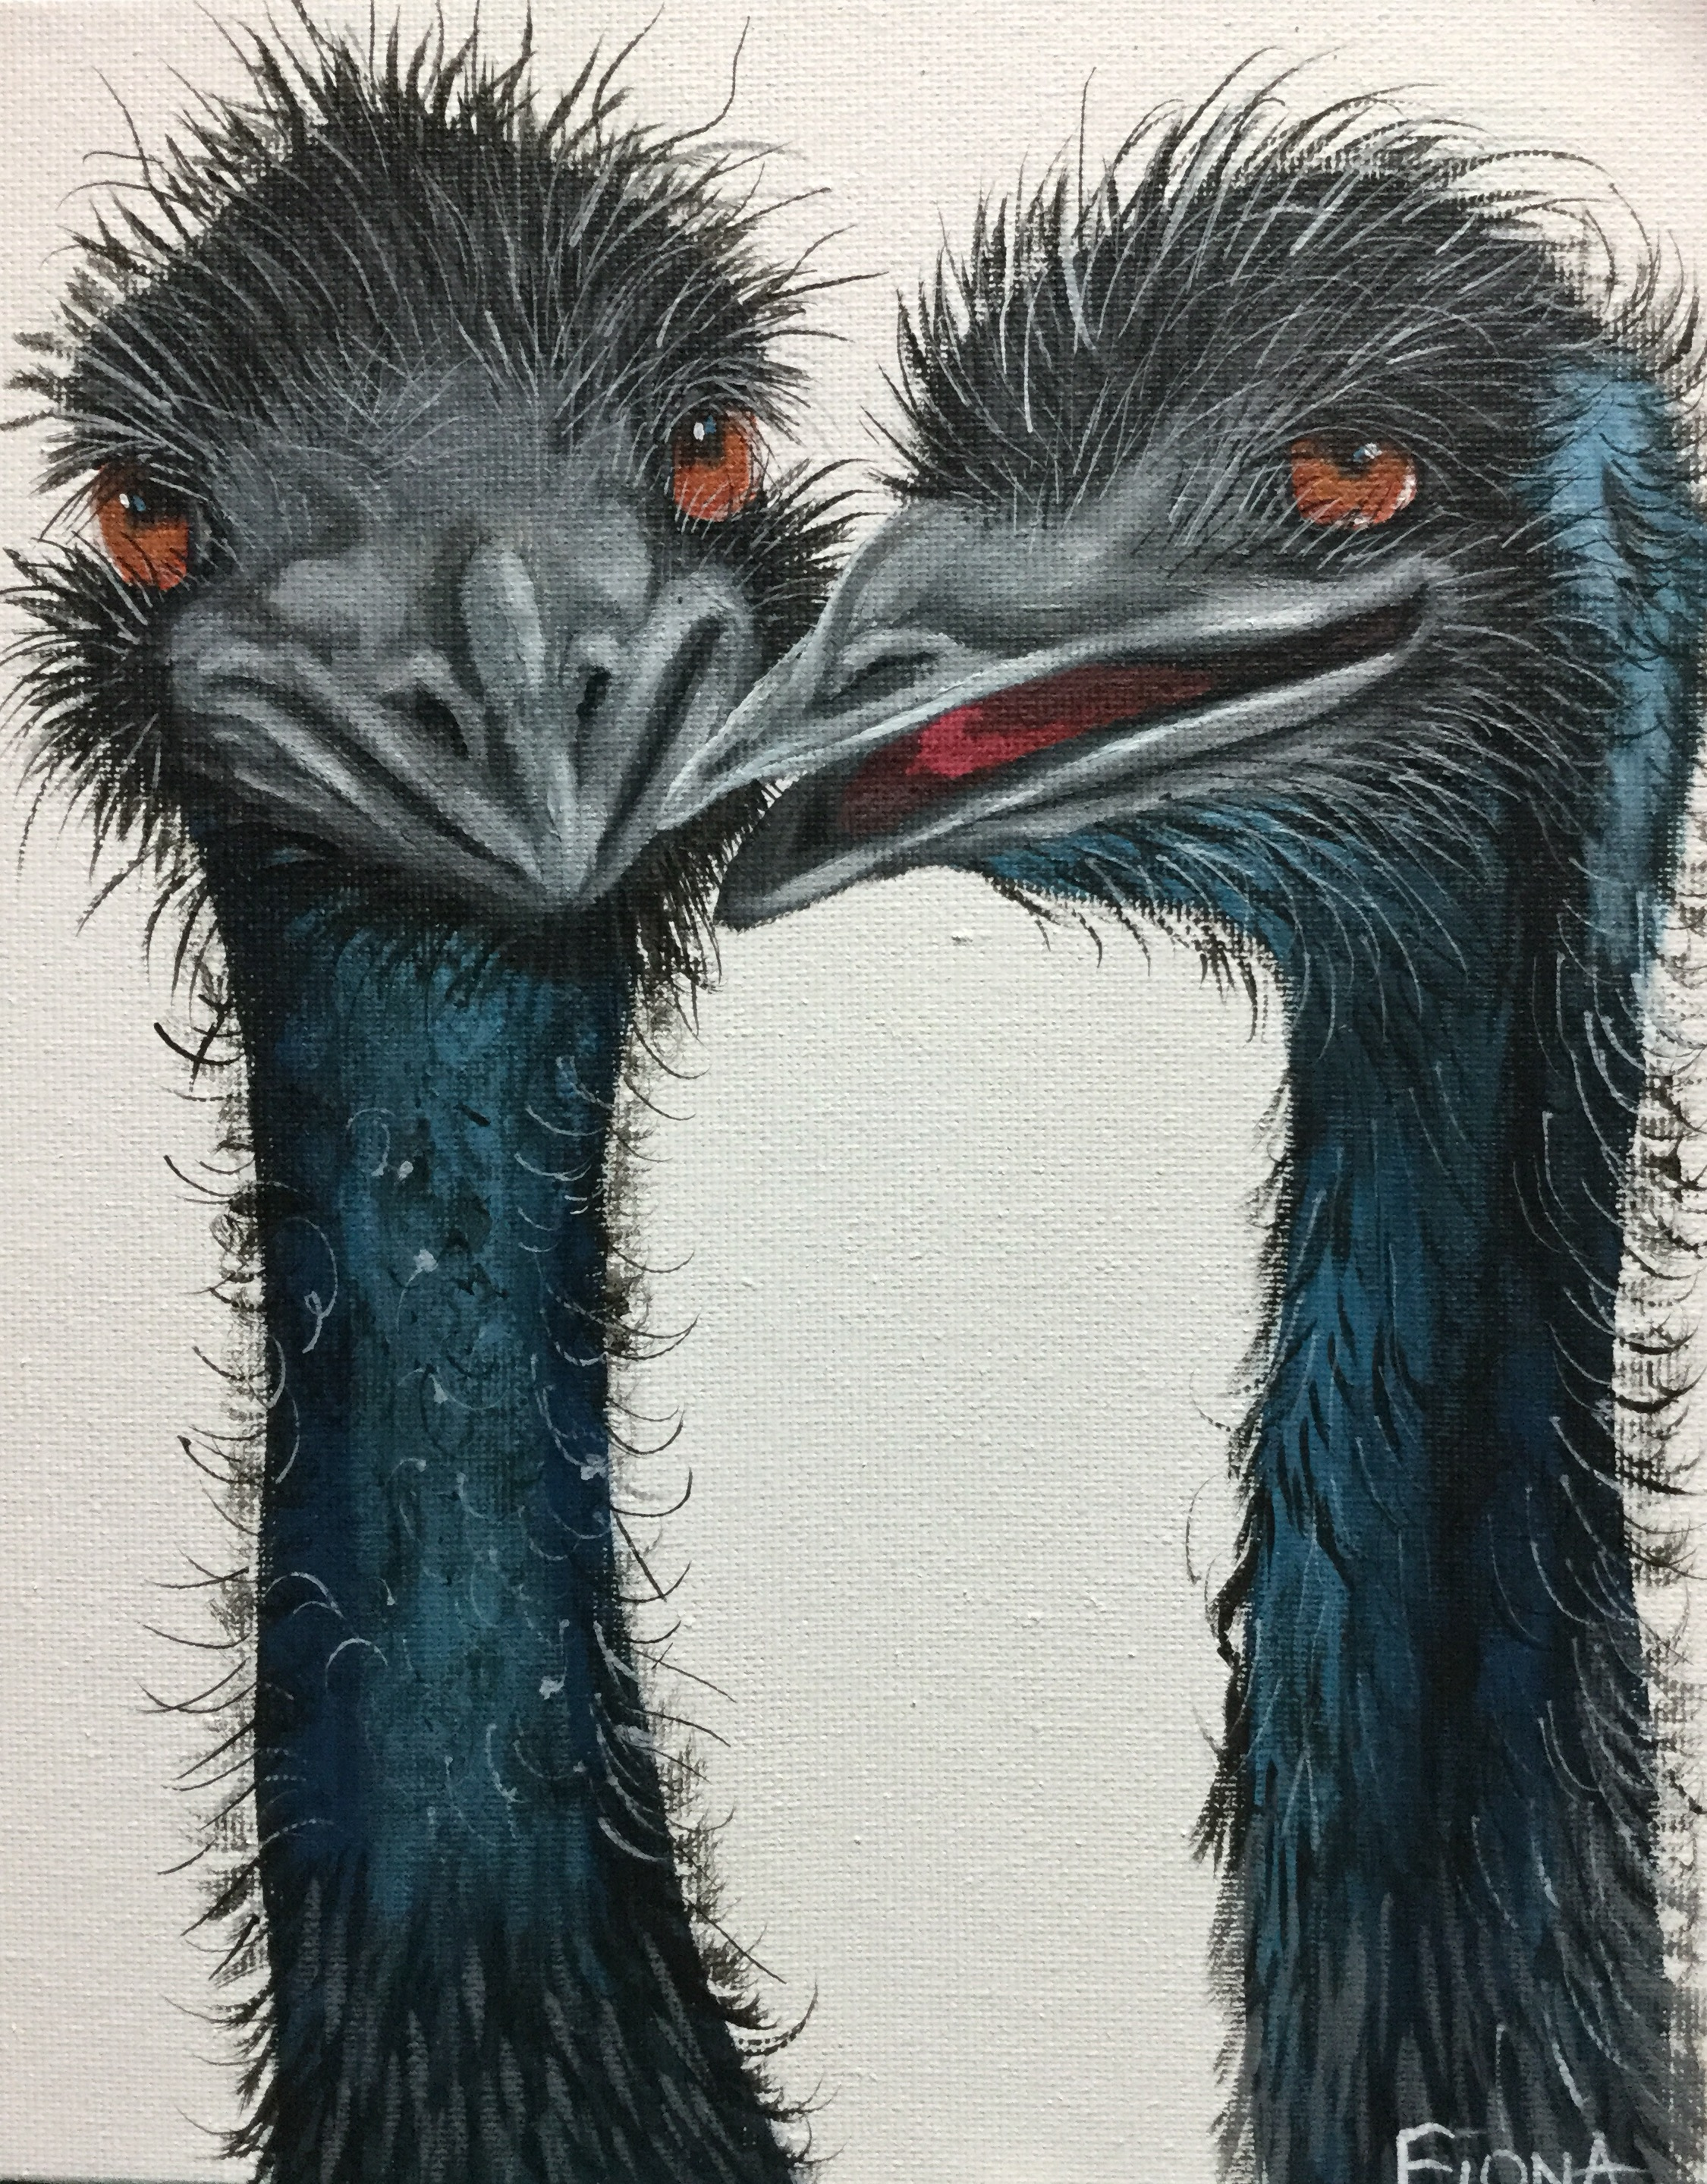 the emus